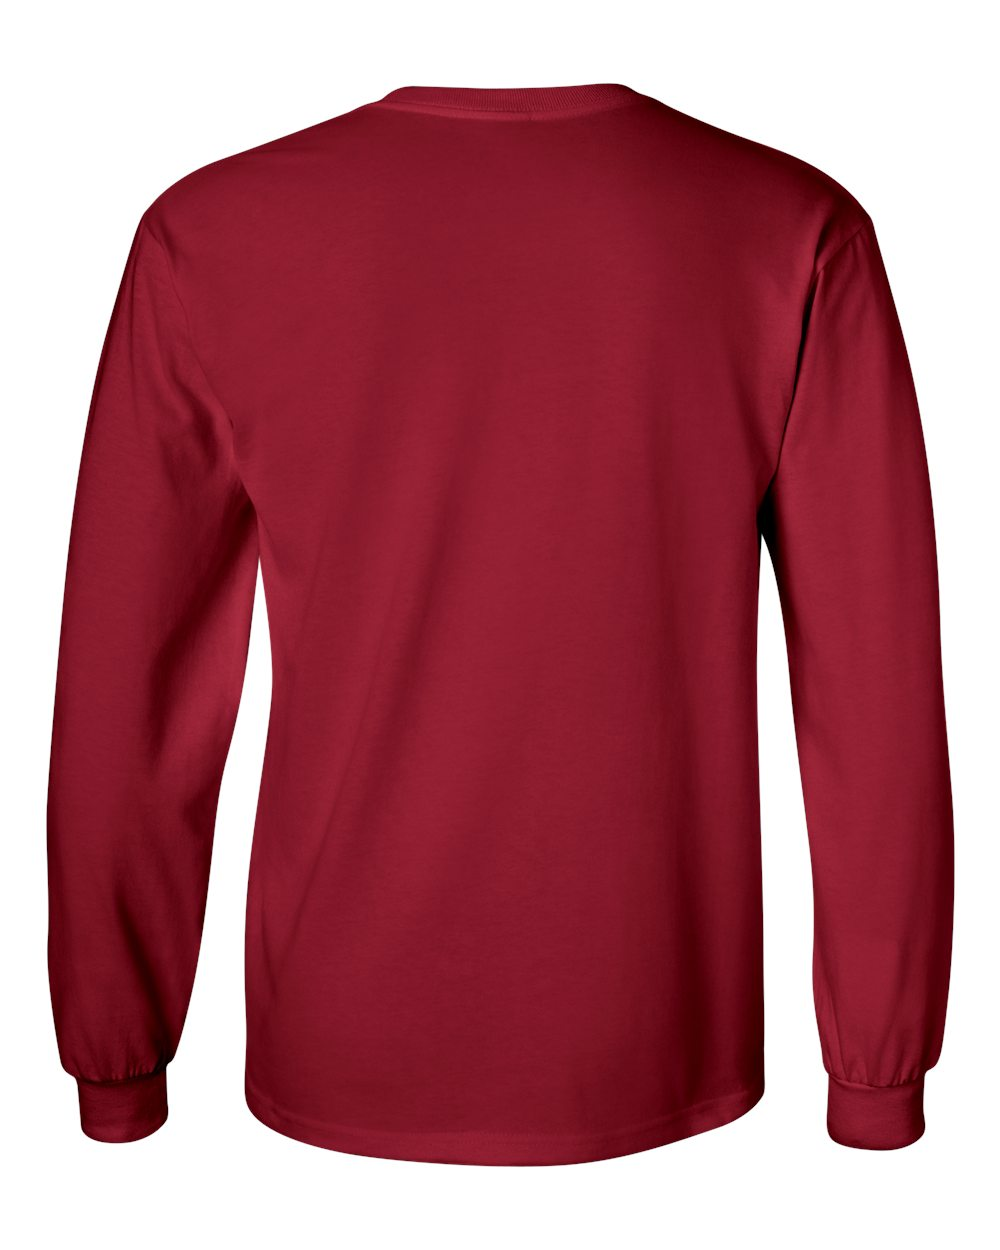 Gildan-Men-039-s-Ultra-Cotton-6-oz-Long-Sleeve-T-Shirt-G240-S-5XL thumbnail 12